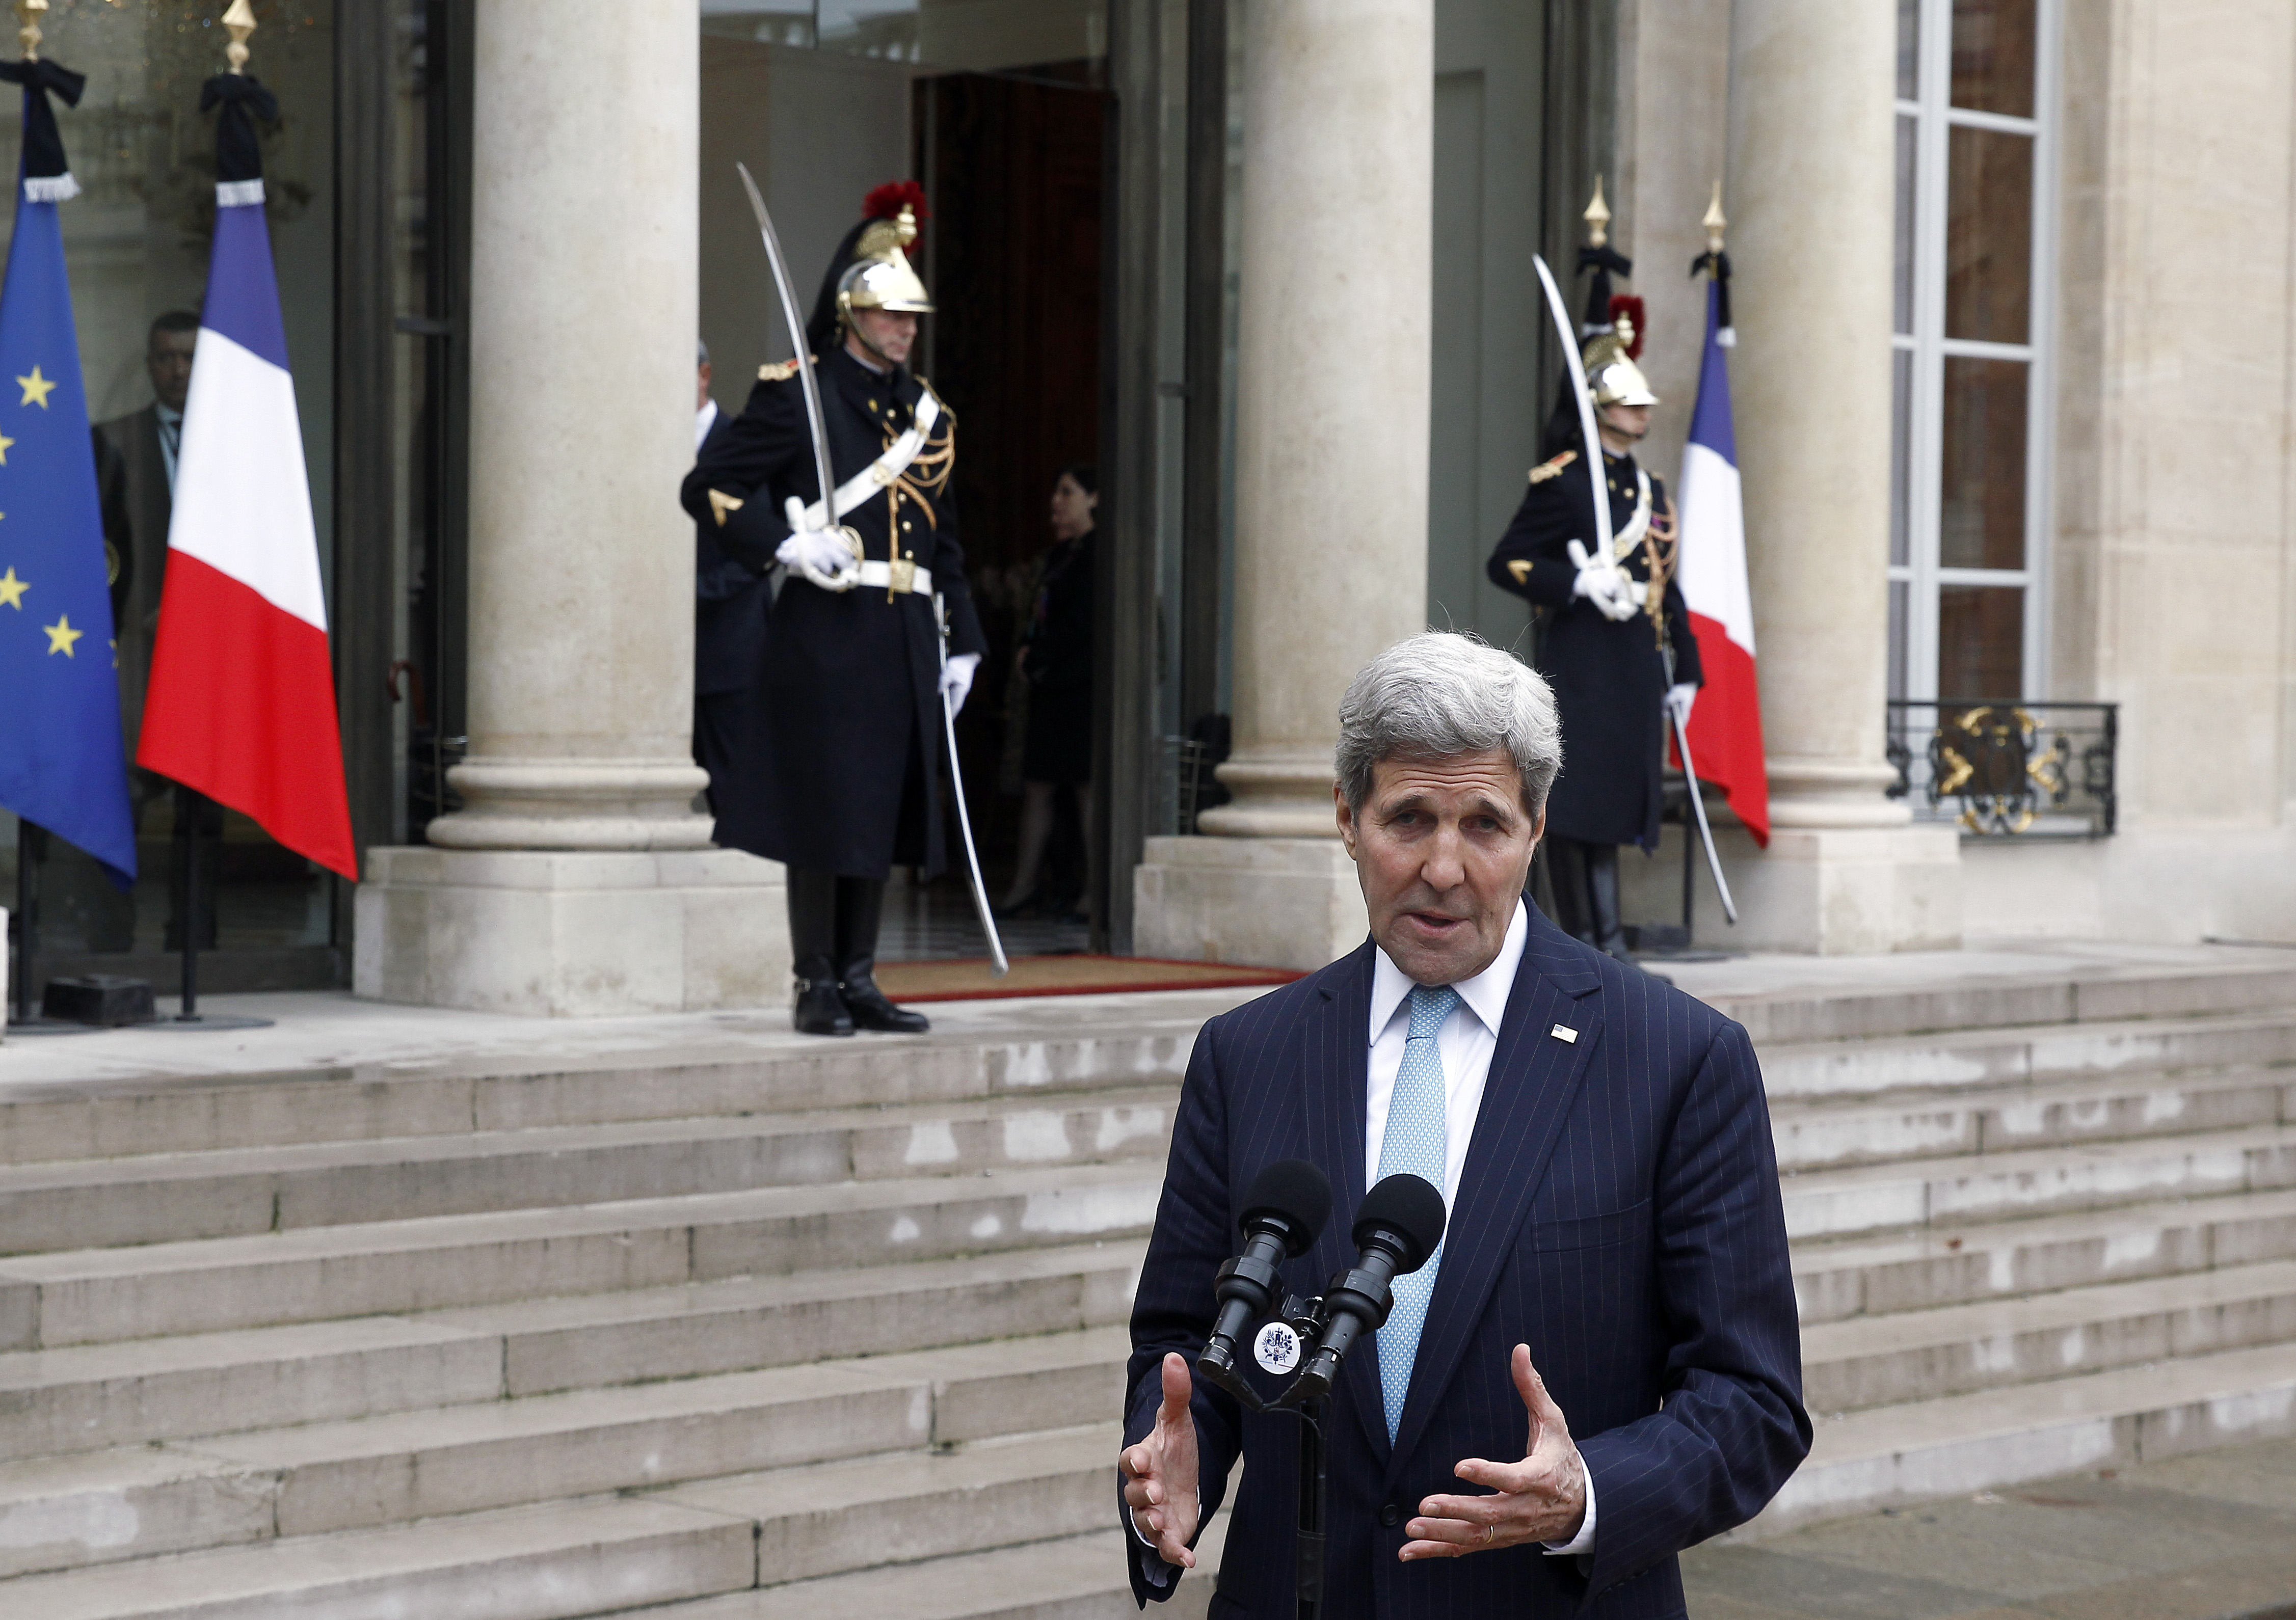 US Secretary of State John Kerry talks to the media after a meeting with French President Francois Hollande at the Elysee Presidential Palace on November 17, 2015 in Paris, France. John Kerry arrives in Paris to pay tribute to victims of last week's terrorist attacks.